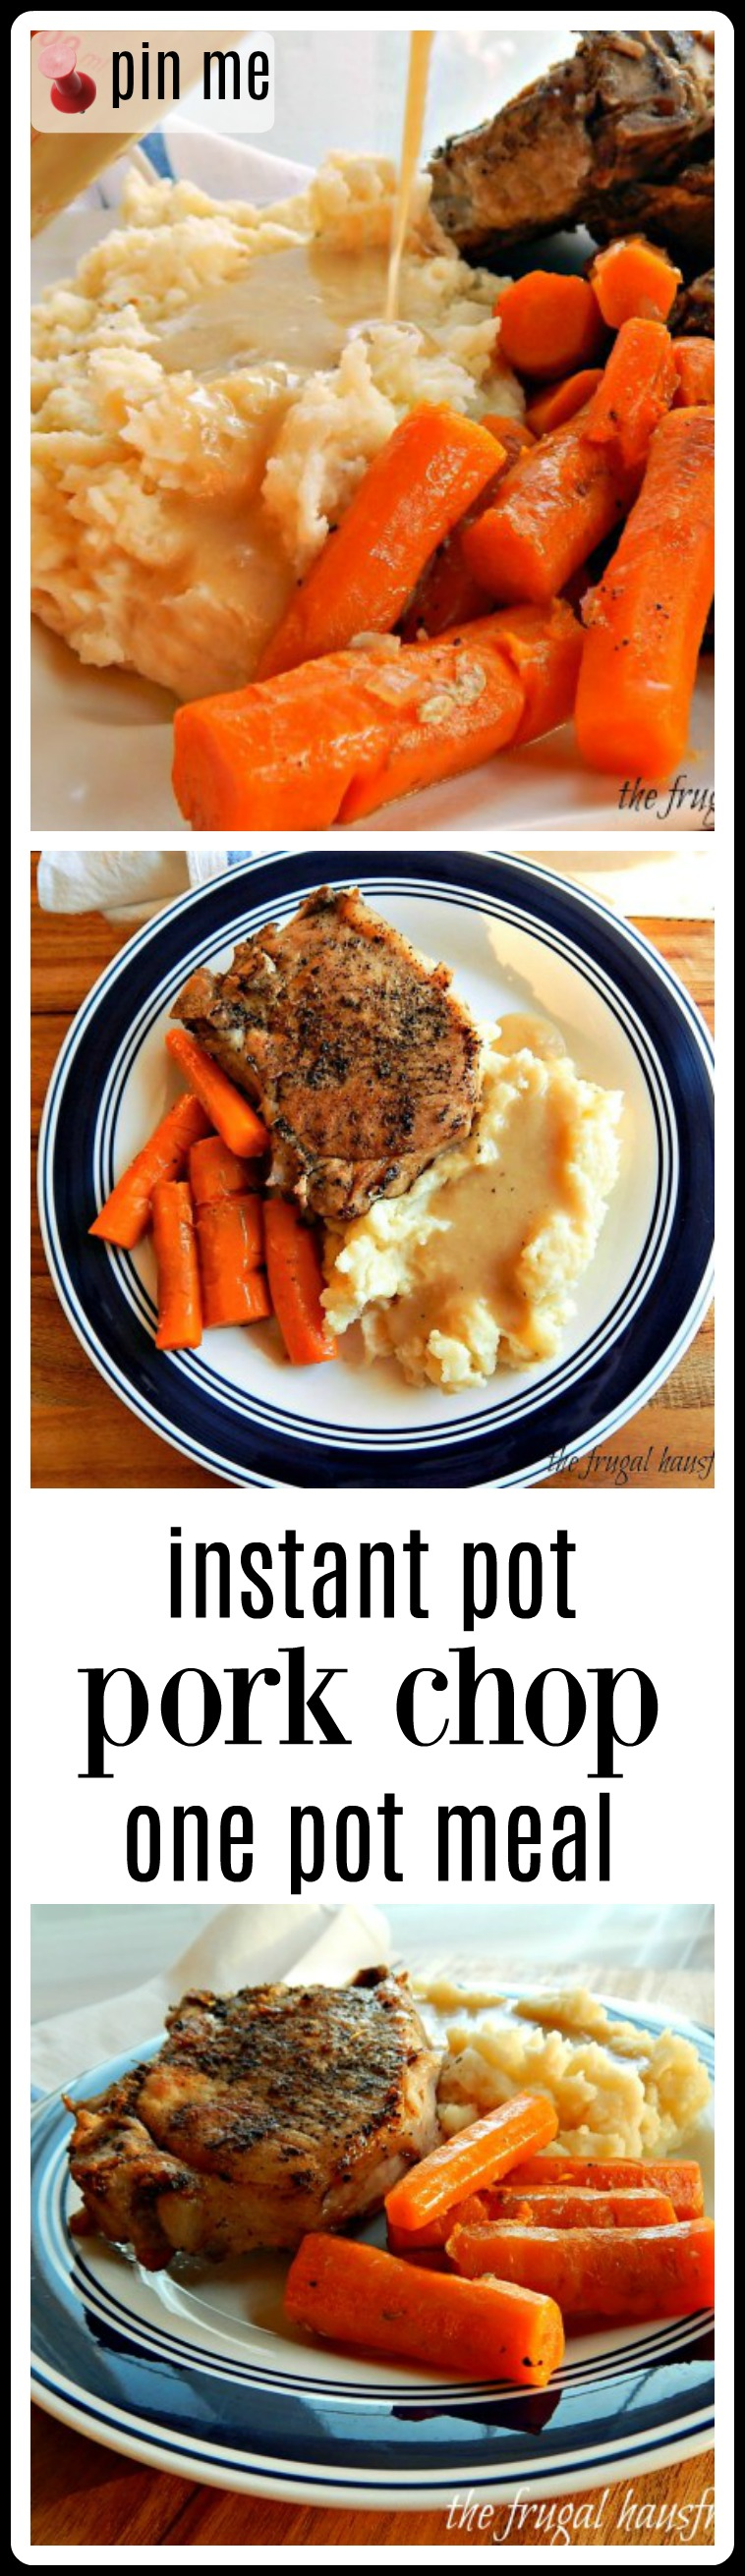 Instant Pot Pork Chop One-Pot Meal is classic Midwestern comfort with all the fixins': seasoned thick-cut pork chops, mashed potatoes with luscious cream gravy & carrots that just about steal the show! A fave of my folks, who are in their 90s now! #PorkChops #InstantPotPorkChops #InstantPotPorkChopOnePotMeal